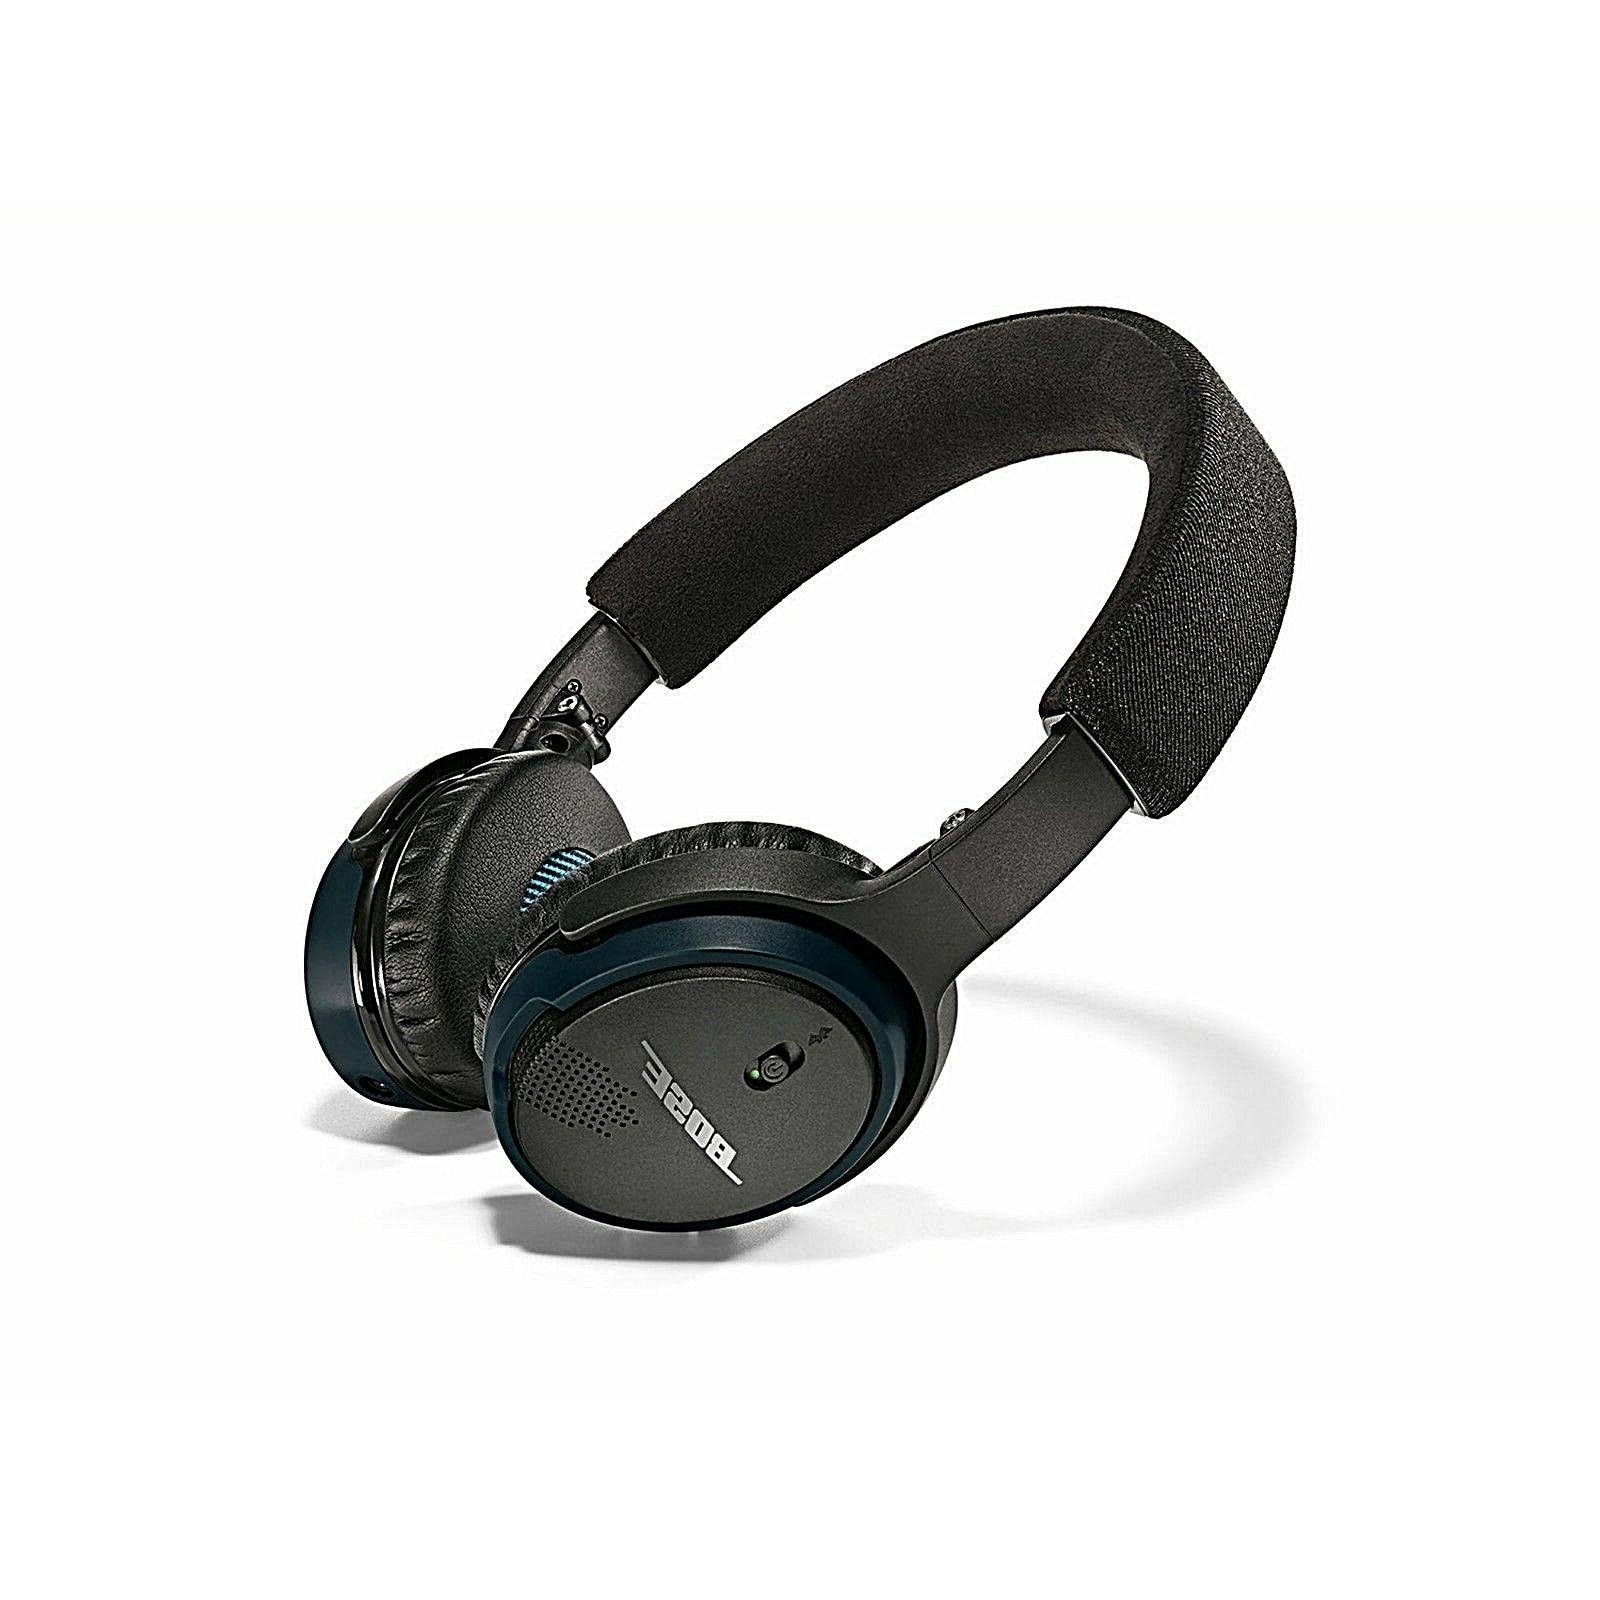 Bose SoundLink On-Ear Bluetooth Wireless Headphones - Black